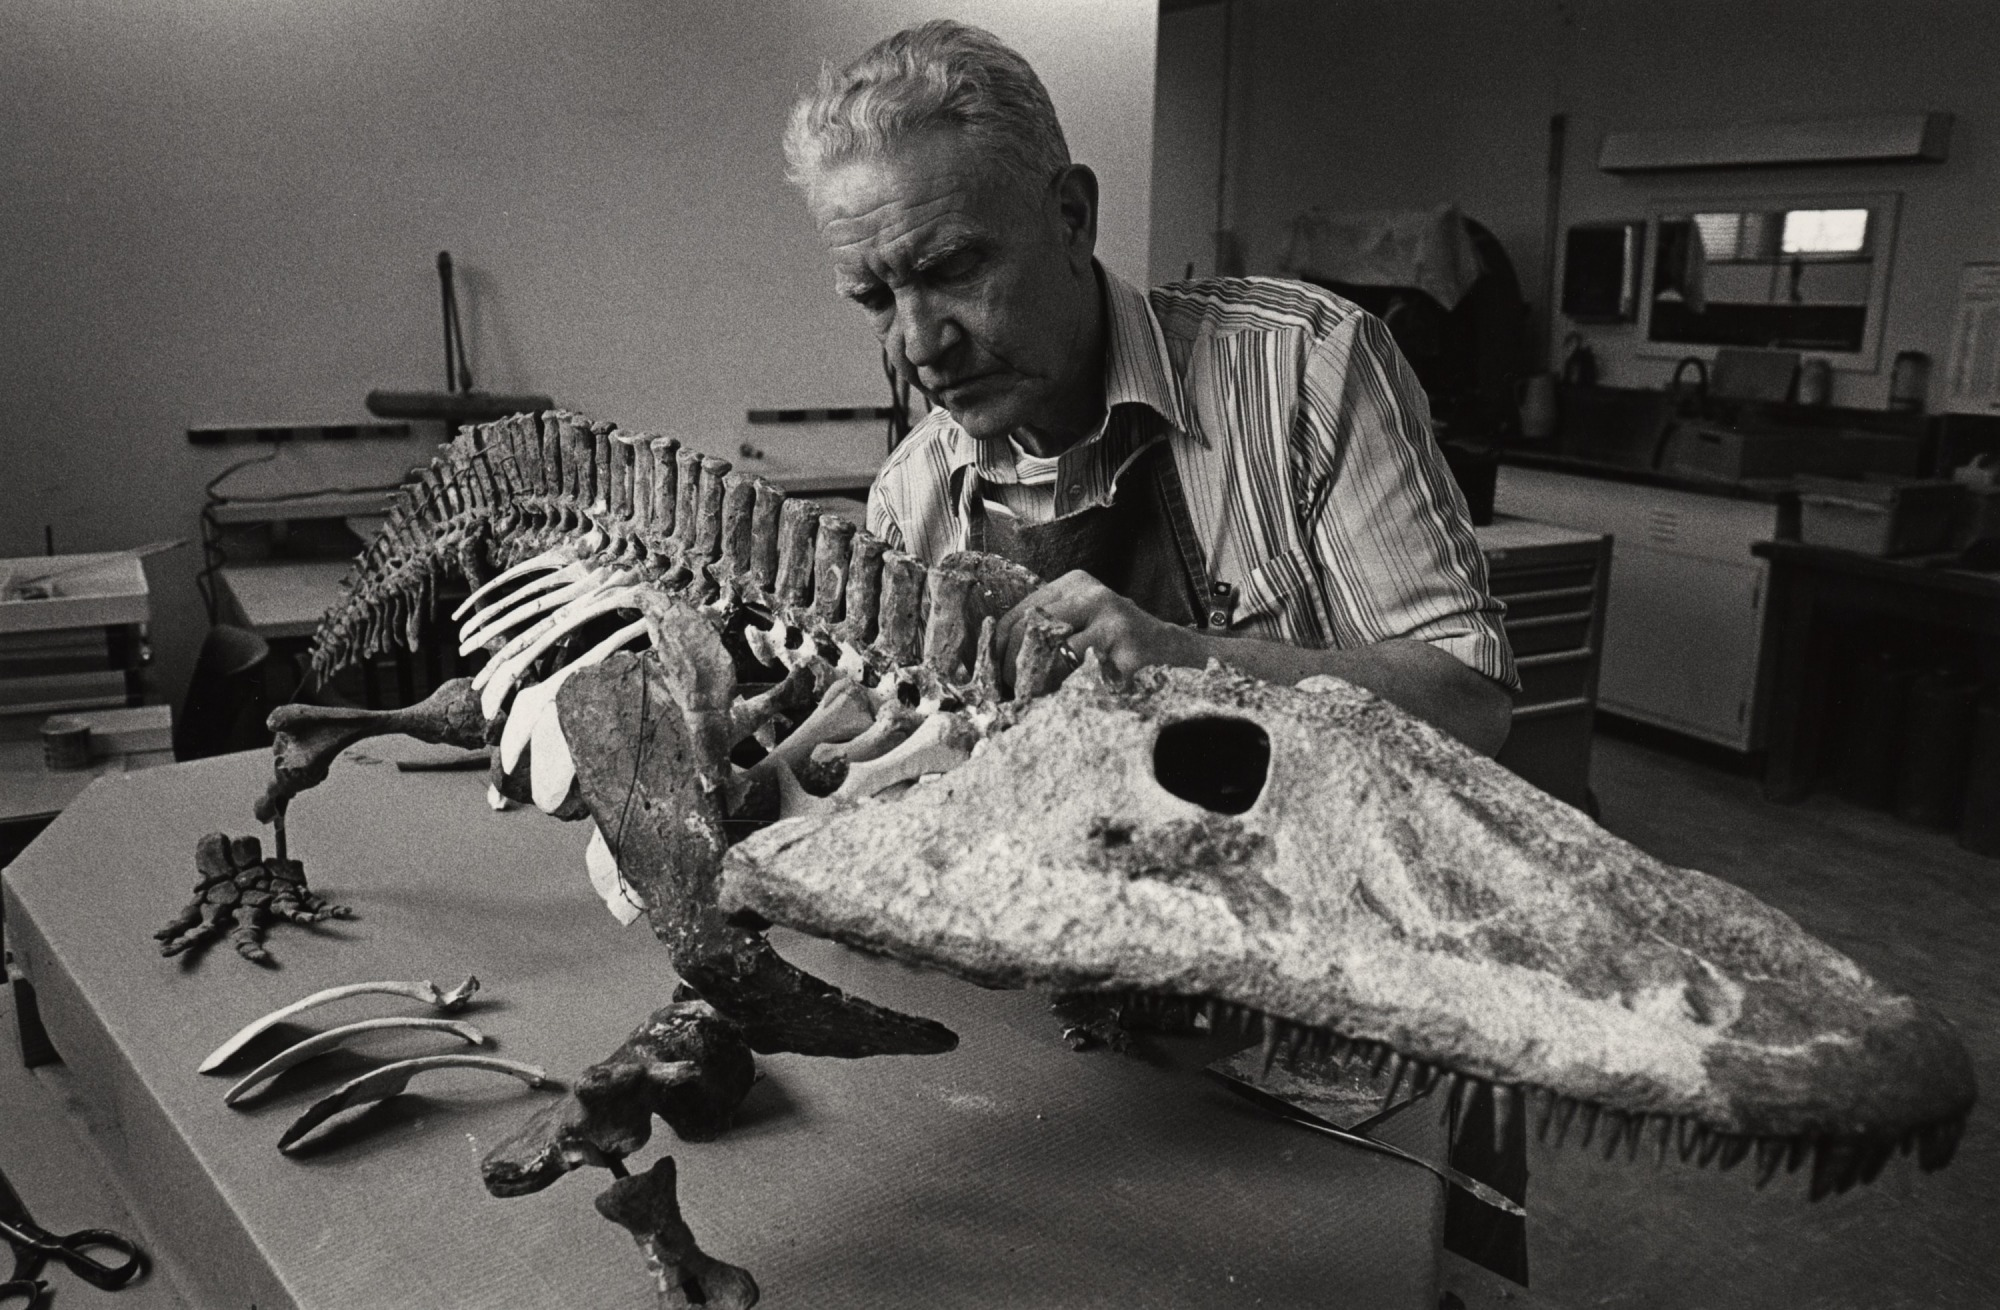 Leroy Glenn, Jr., at Work, by Clark, Chip, 1980, Smithsonian Archives - History Div, 2003-19501.